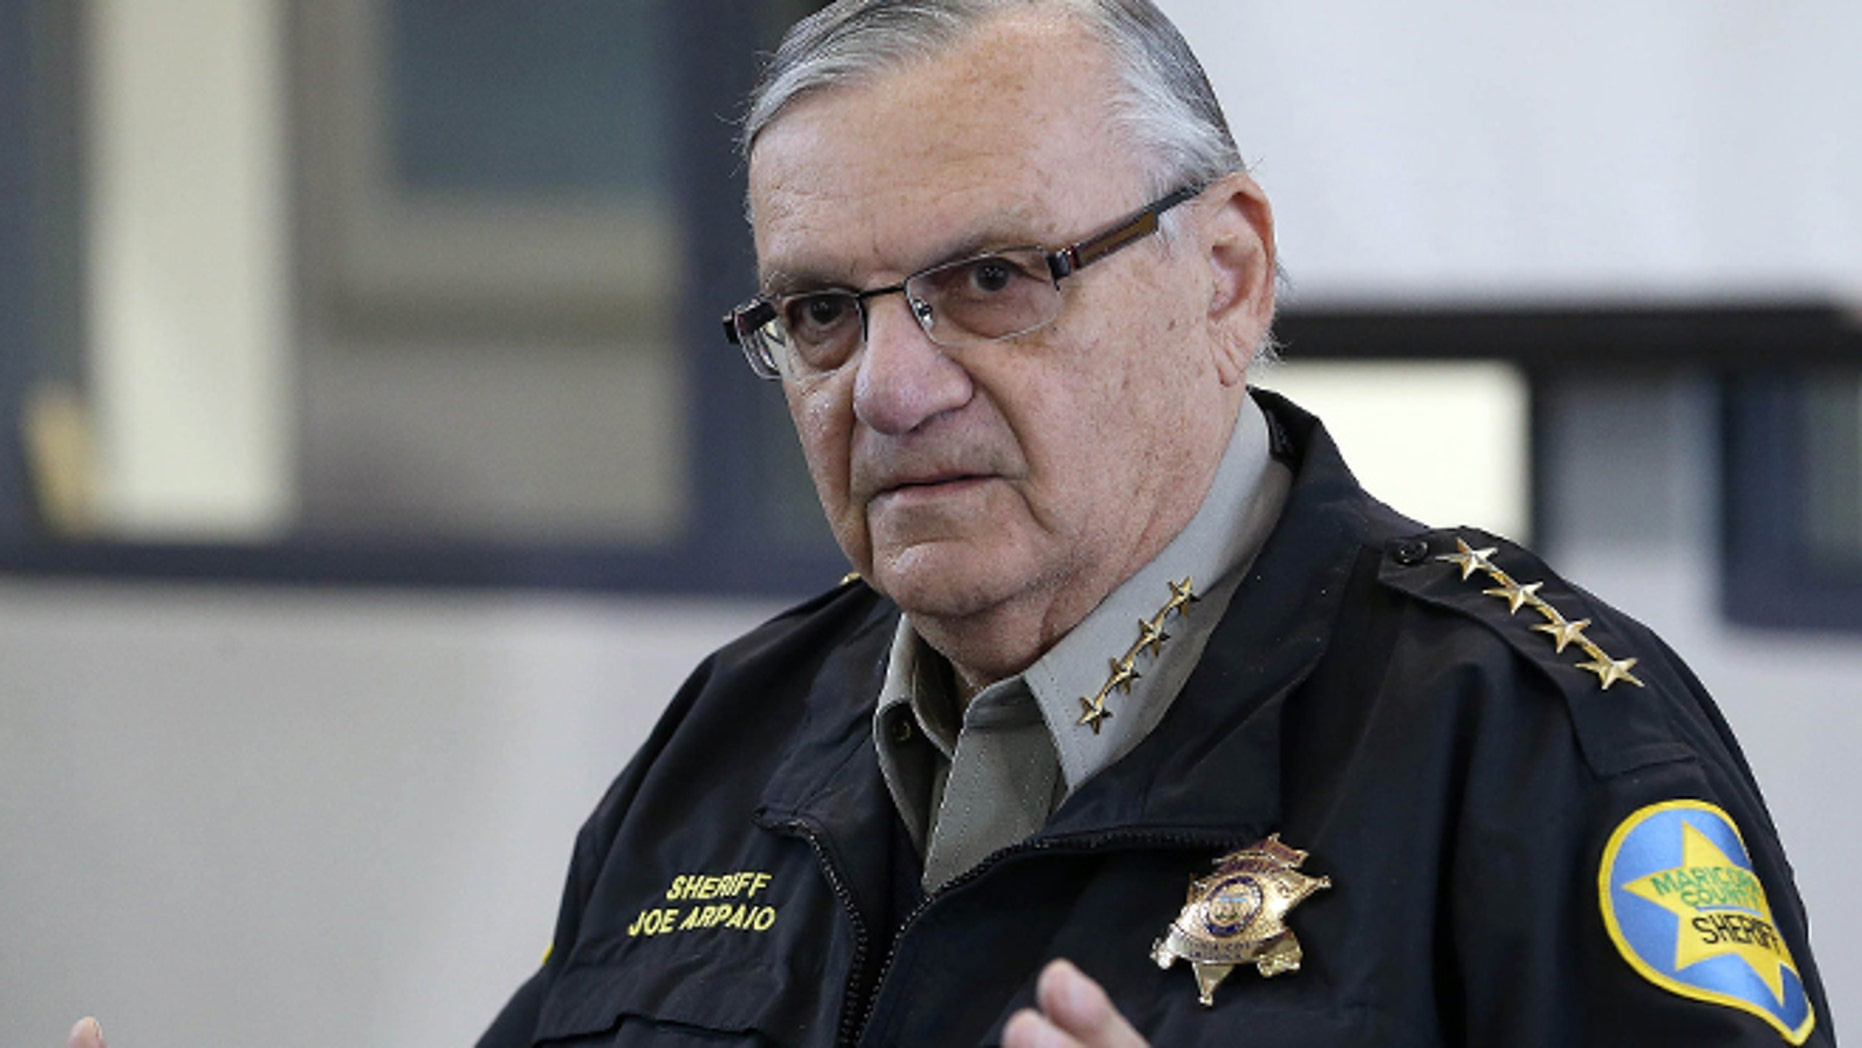 An aide to Maricopa County Sheriff Joe Arpaio, pictured, who was sued as part of the challenge to the law, said he believes the sheriff's office will ask the 9th Circuit to reconsider its opinion and, if that doesn't succeed, will petition the Supreme Court to take the case.